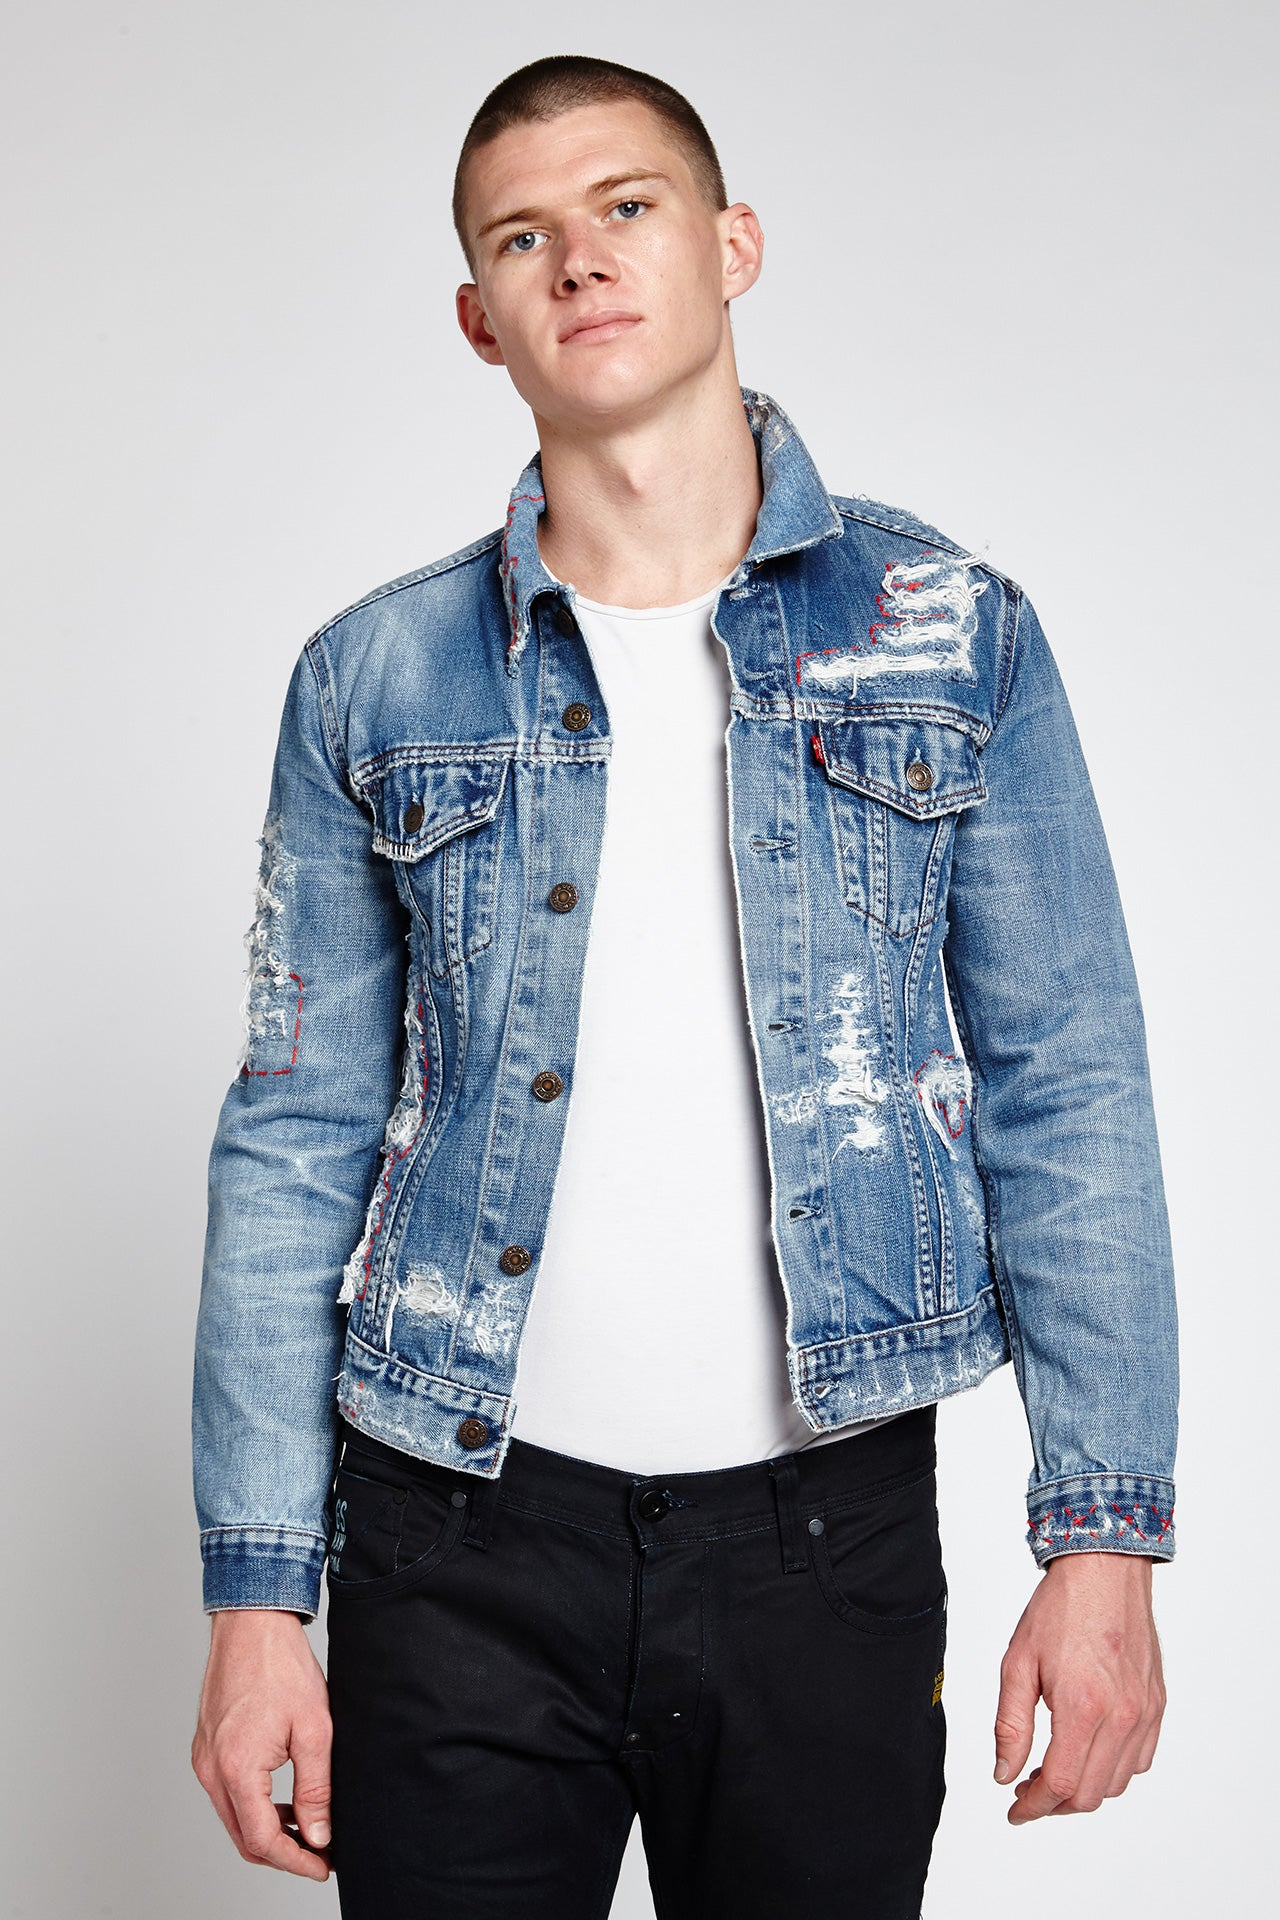 STRAPPO (S) DENIM JACKET IN LIGHT BLUE